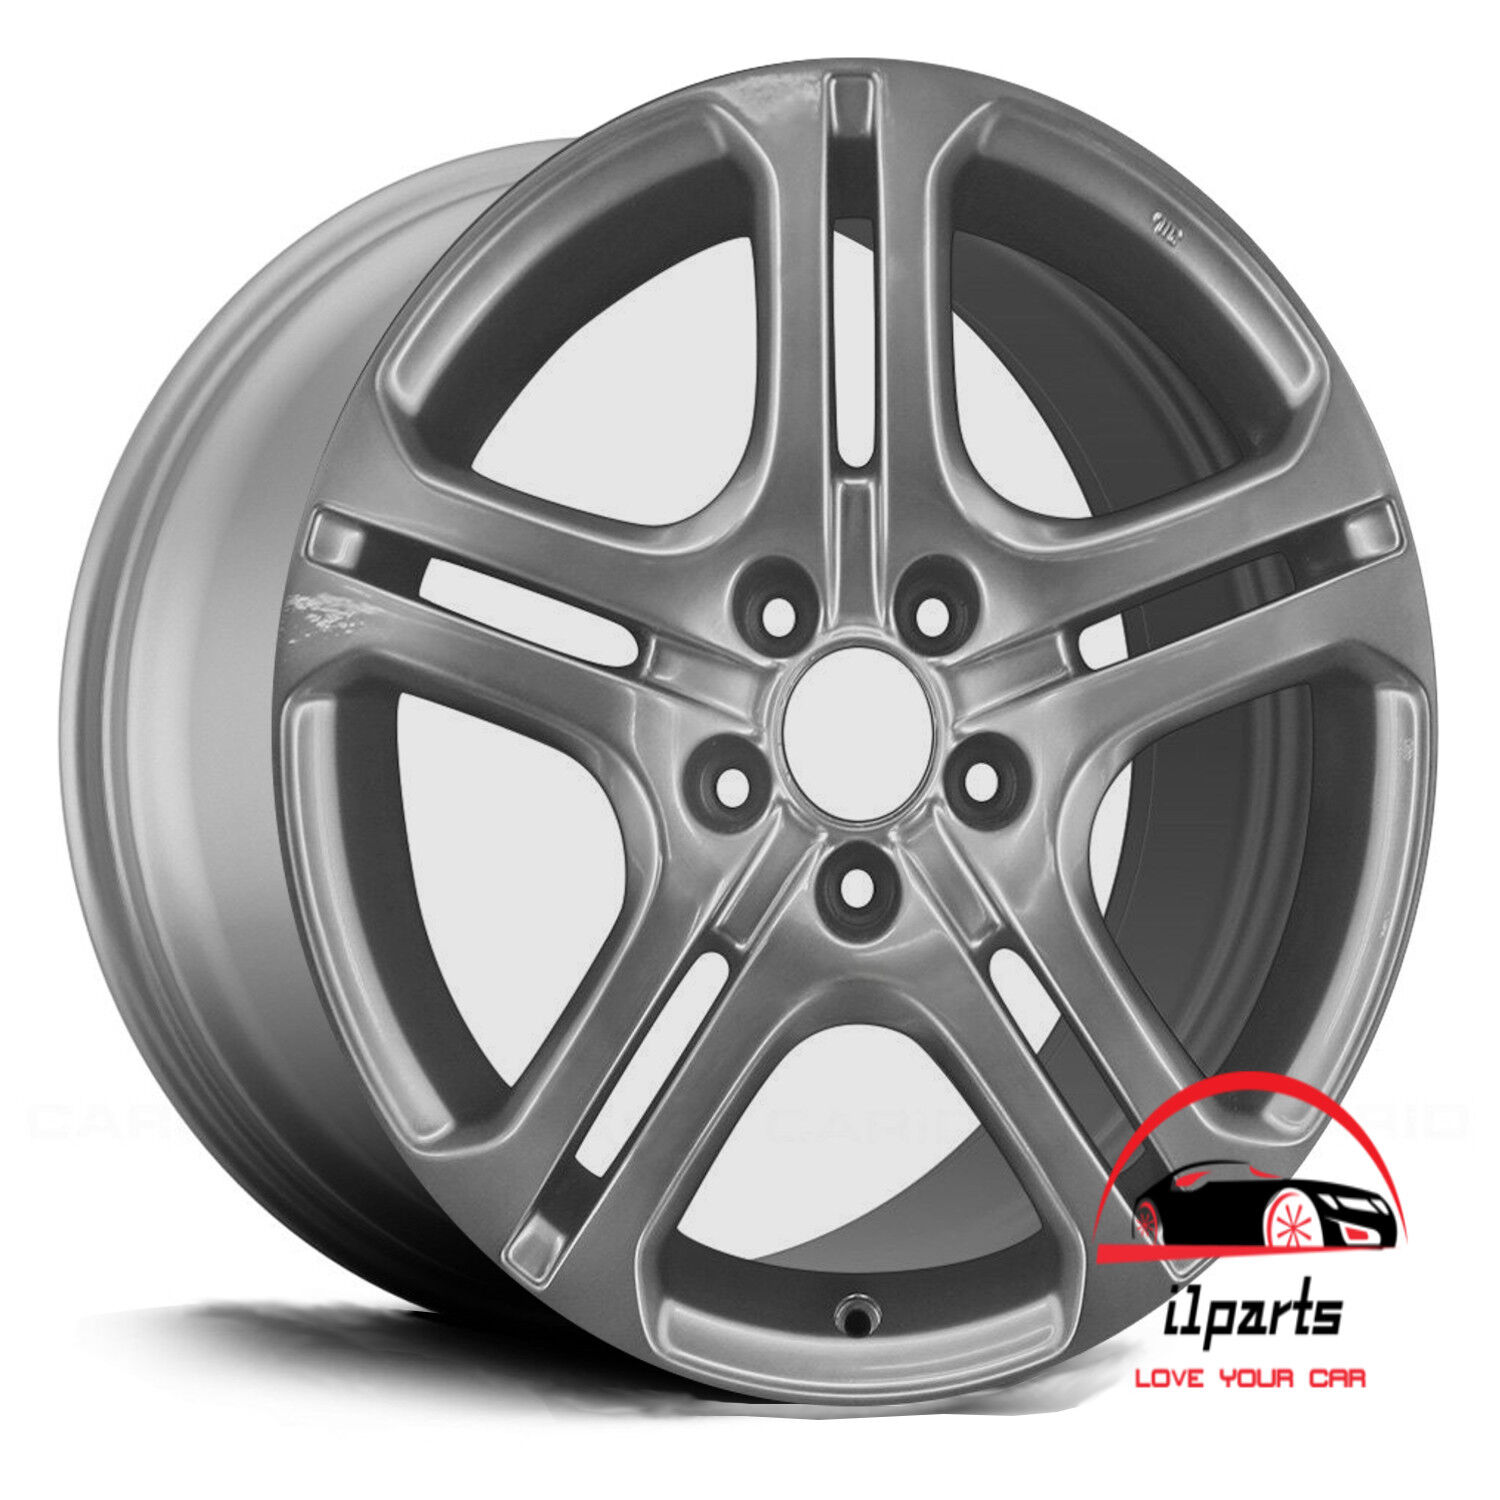 Used 2006 Acura TL Wheels For Sale